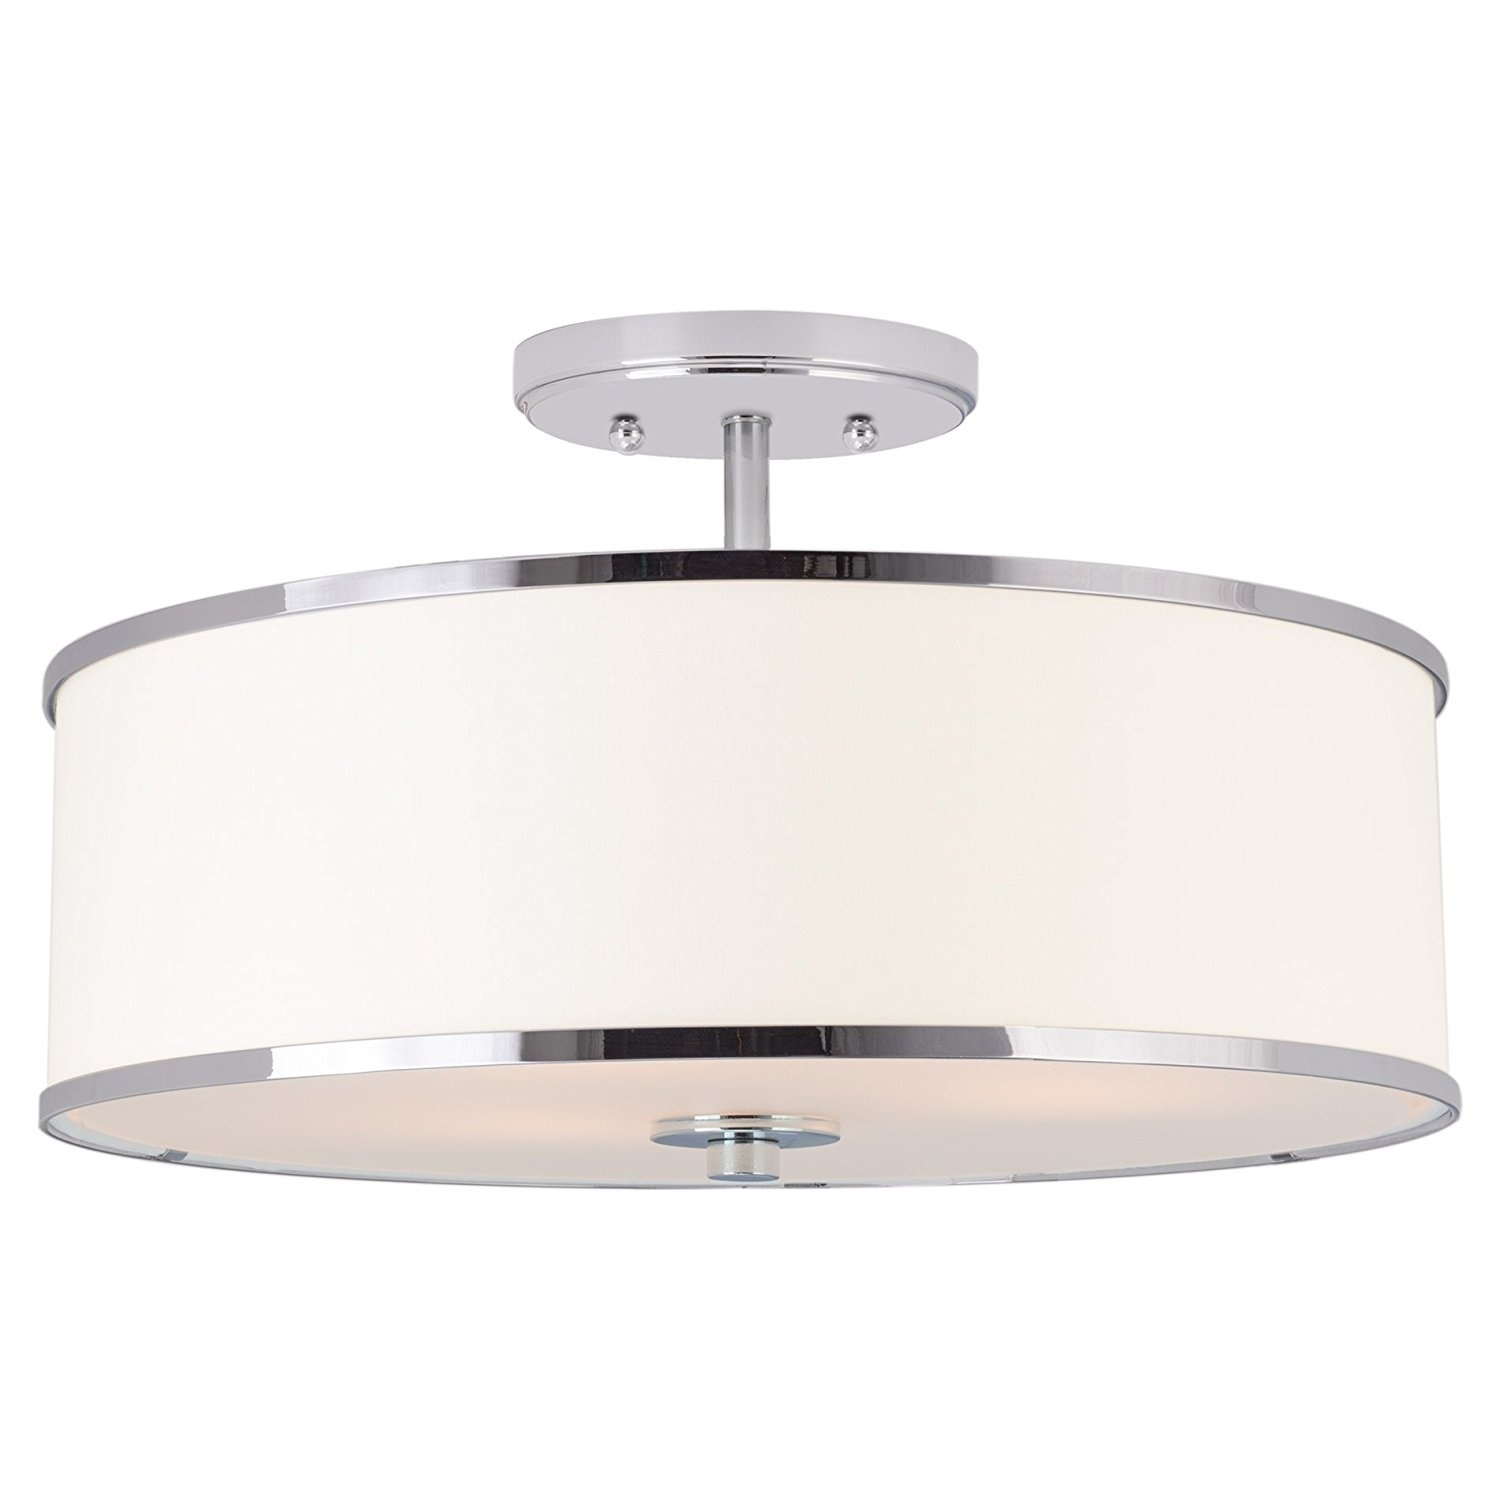 15 Modern Ceiling Light Semi Flush Mount With White Drum Shade Buy Led Shower Lighting Fixtures Round Crystal Chandelier Fashion Hall Led Modern Crystal Chandelier Product On Alibaba Com